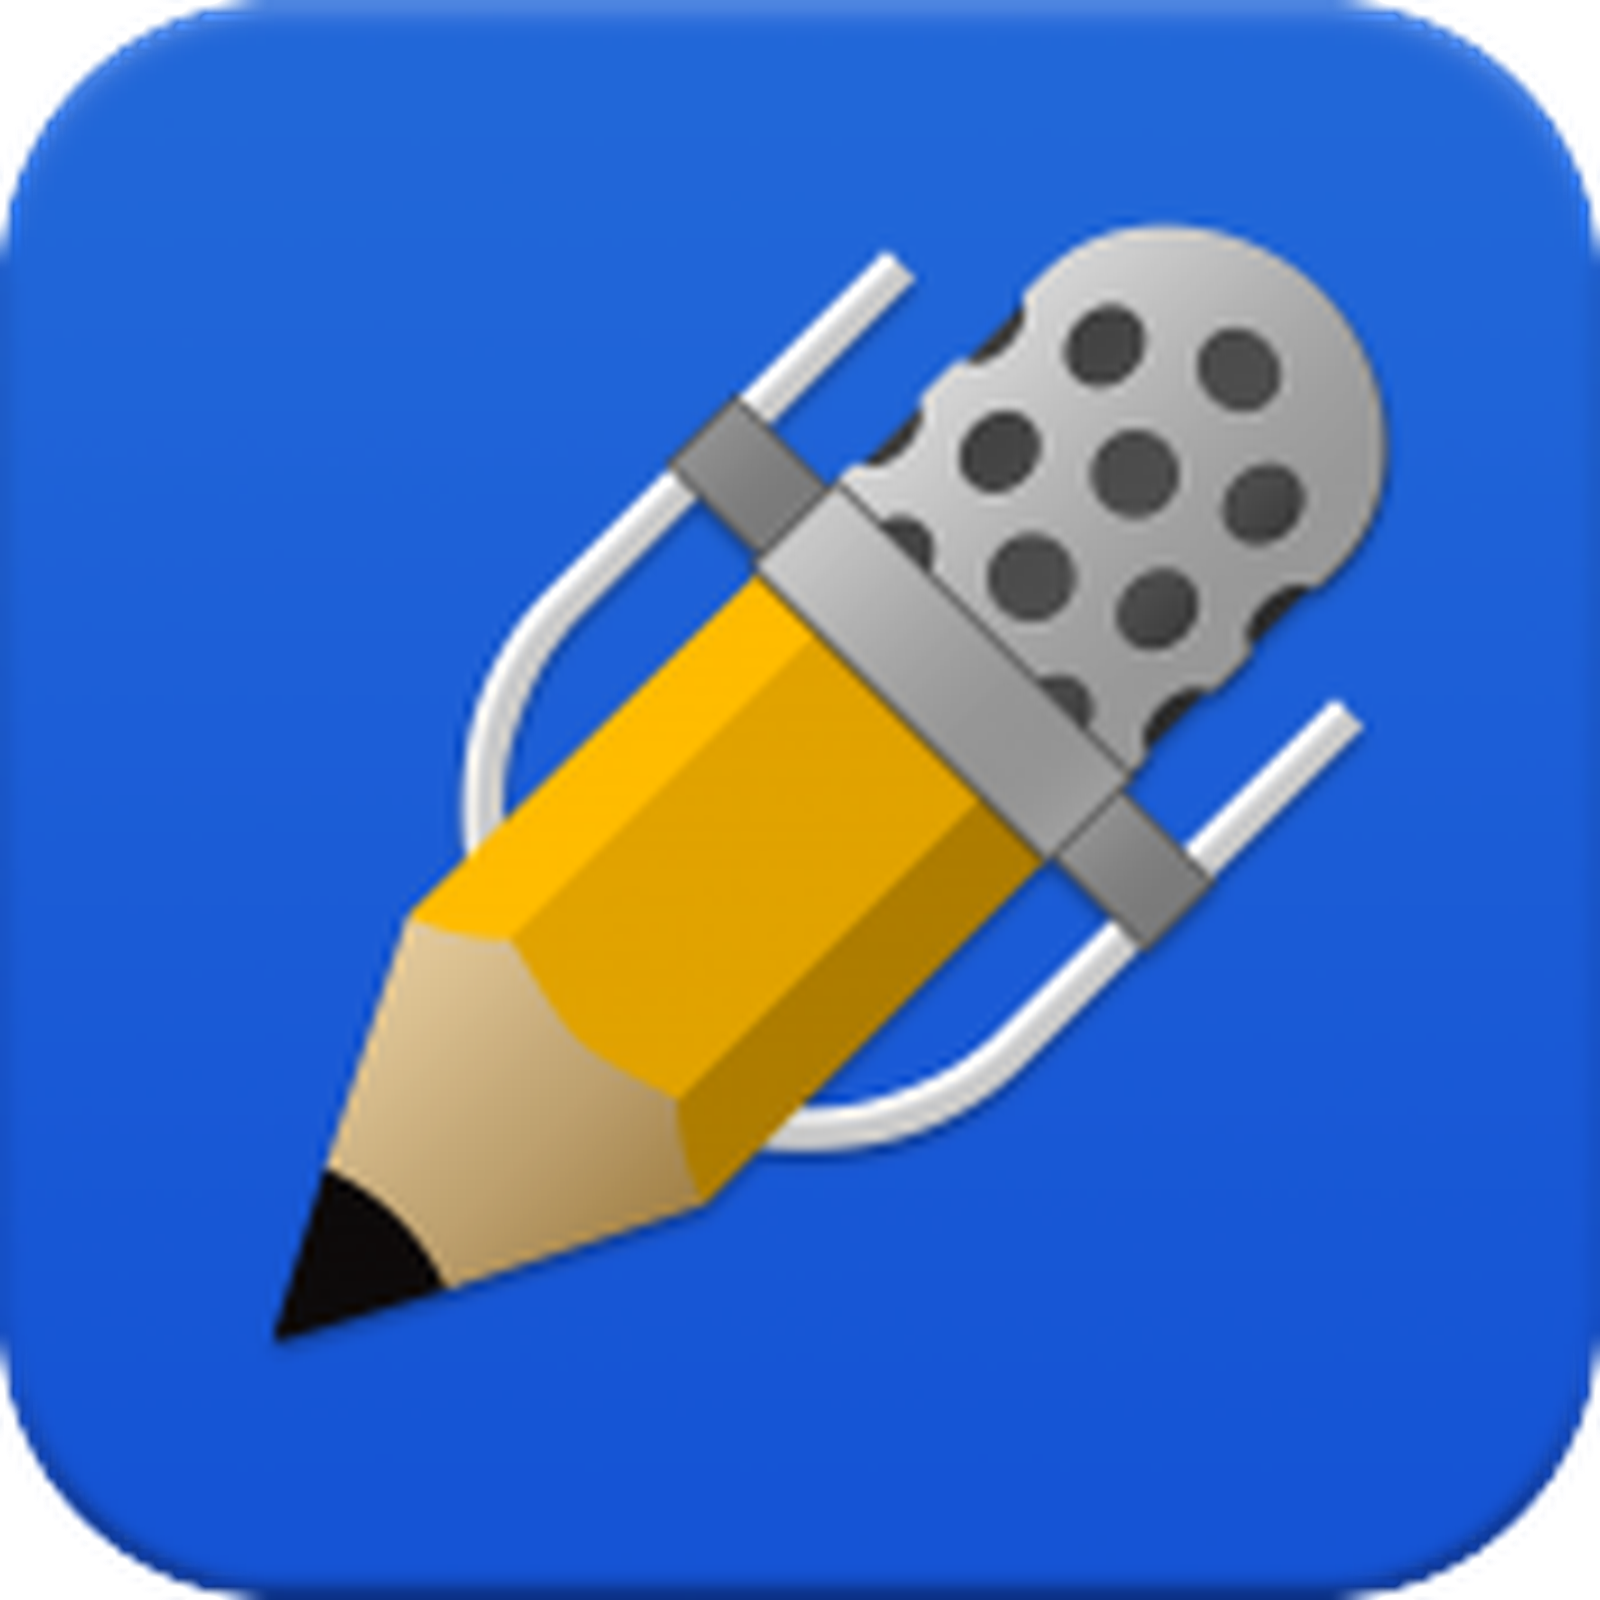 Notability' Named App of the Week, Available for Free - MacRumors